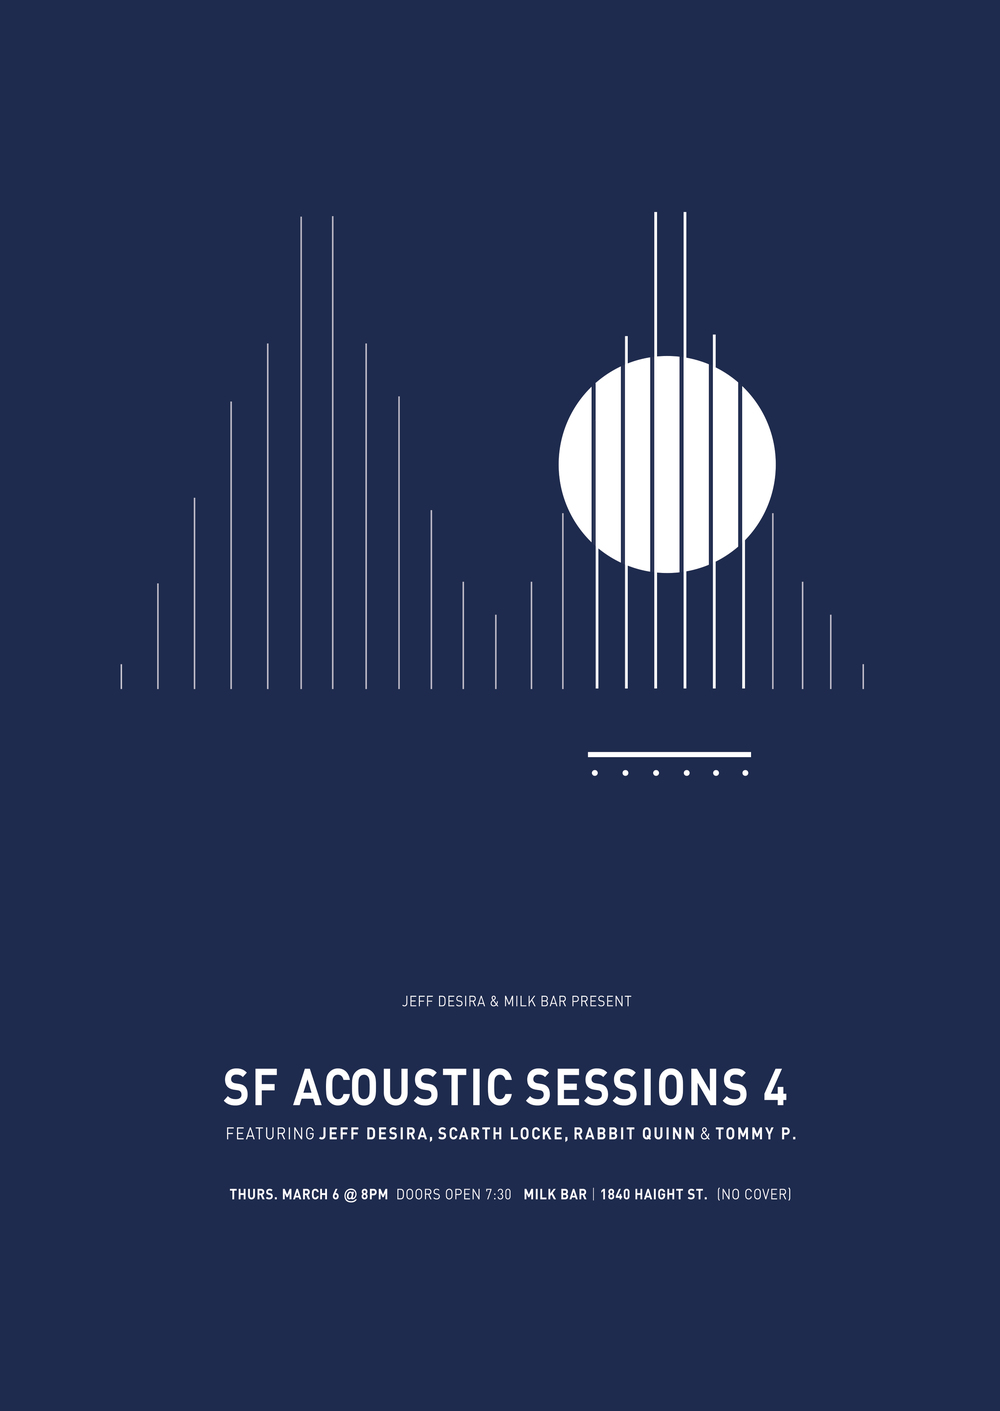 sfacousticsessions4_final_3.jpg